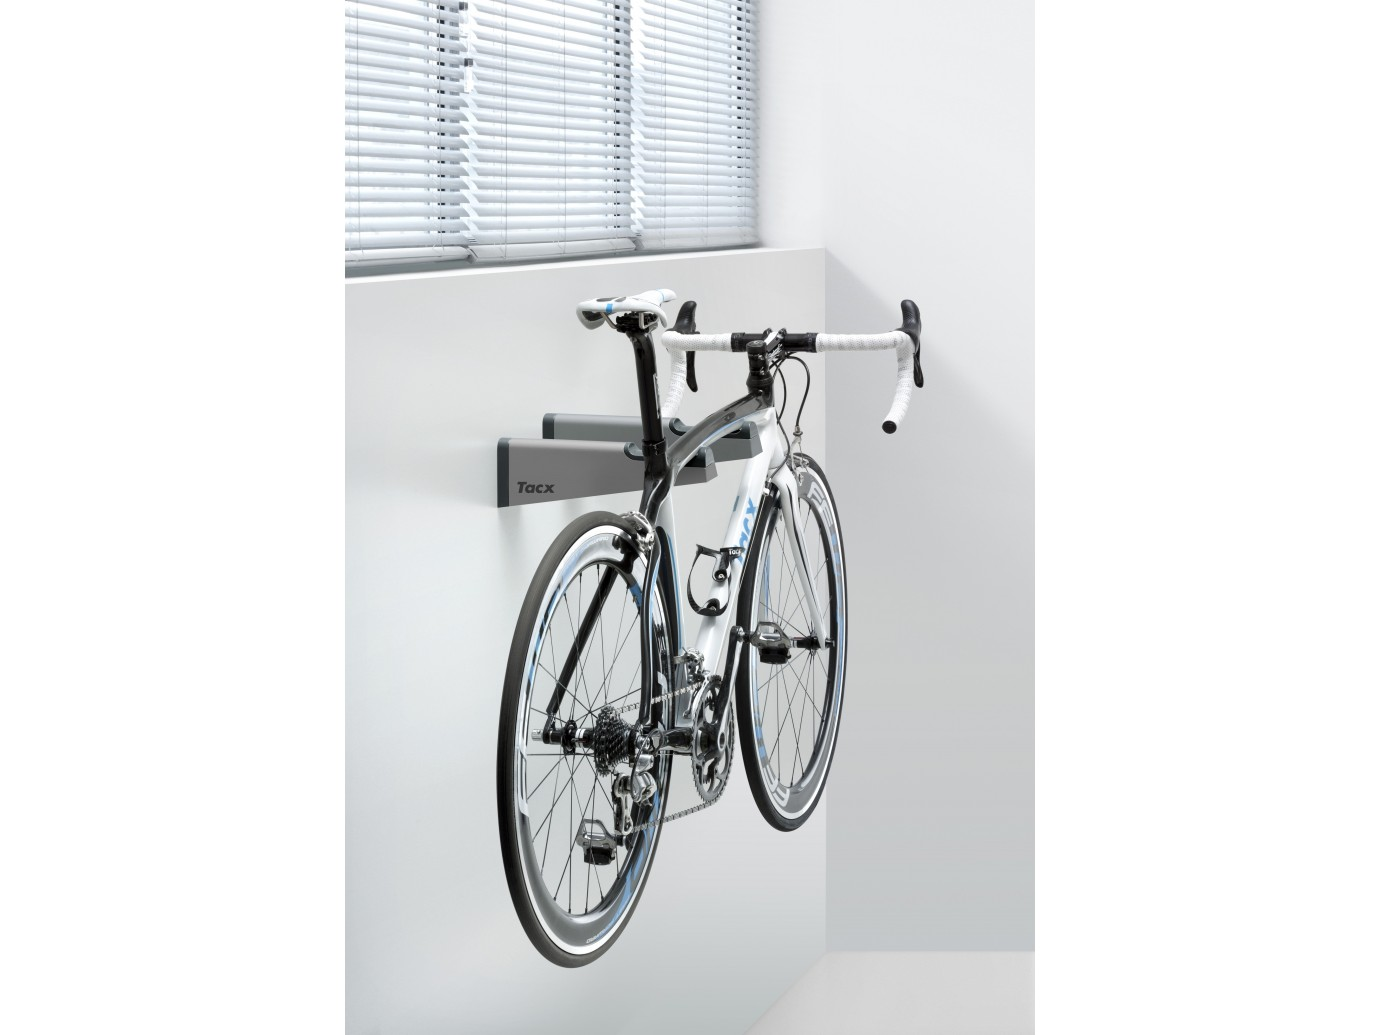 Support mural pour v lo gem bikebracket tacx t3145 - Suspension pour velo garage ...